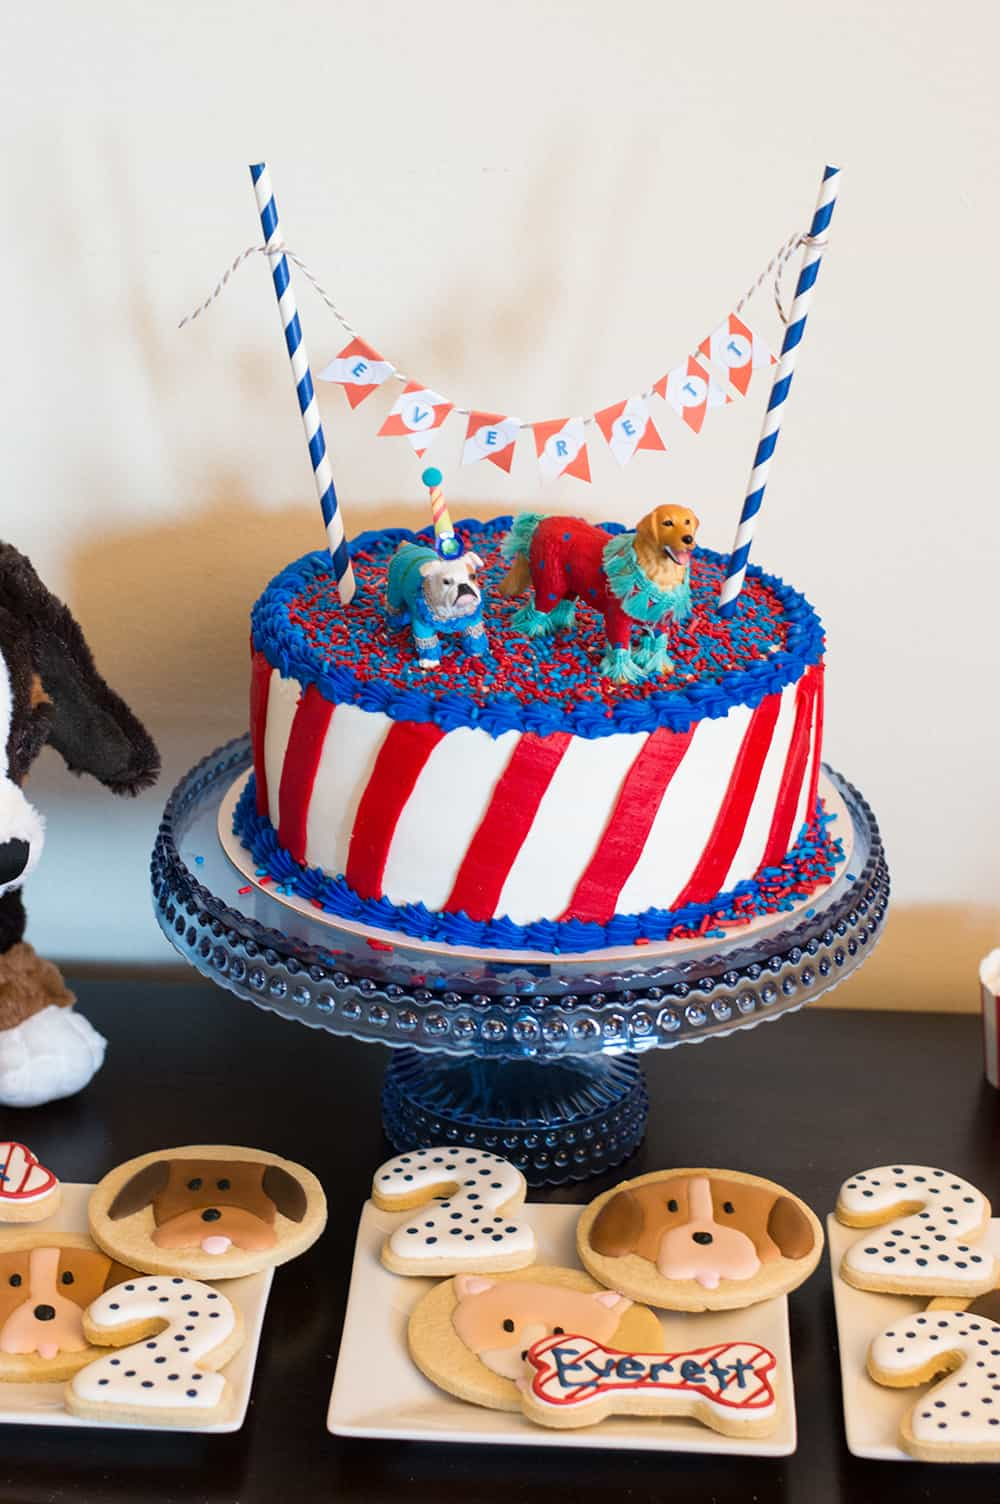 Puppy Party Cake from Elva M Design Studio